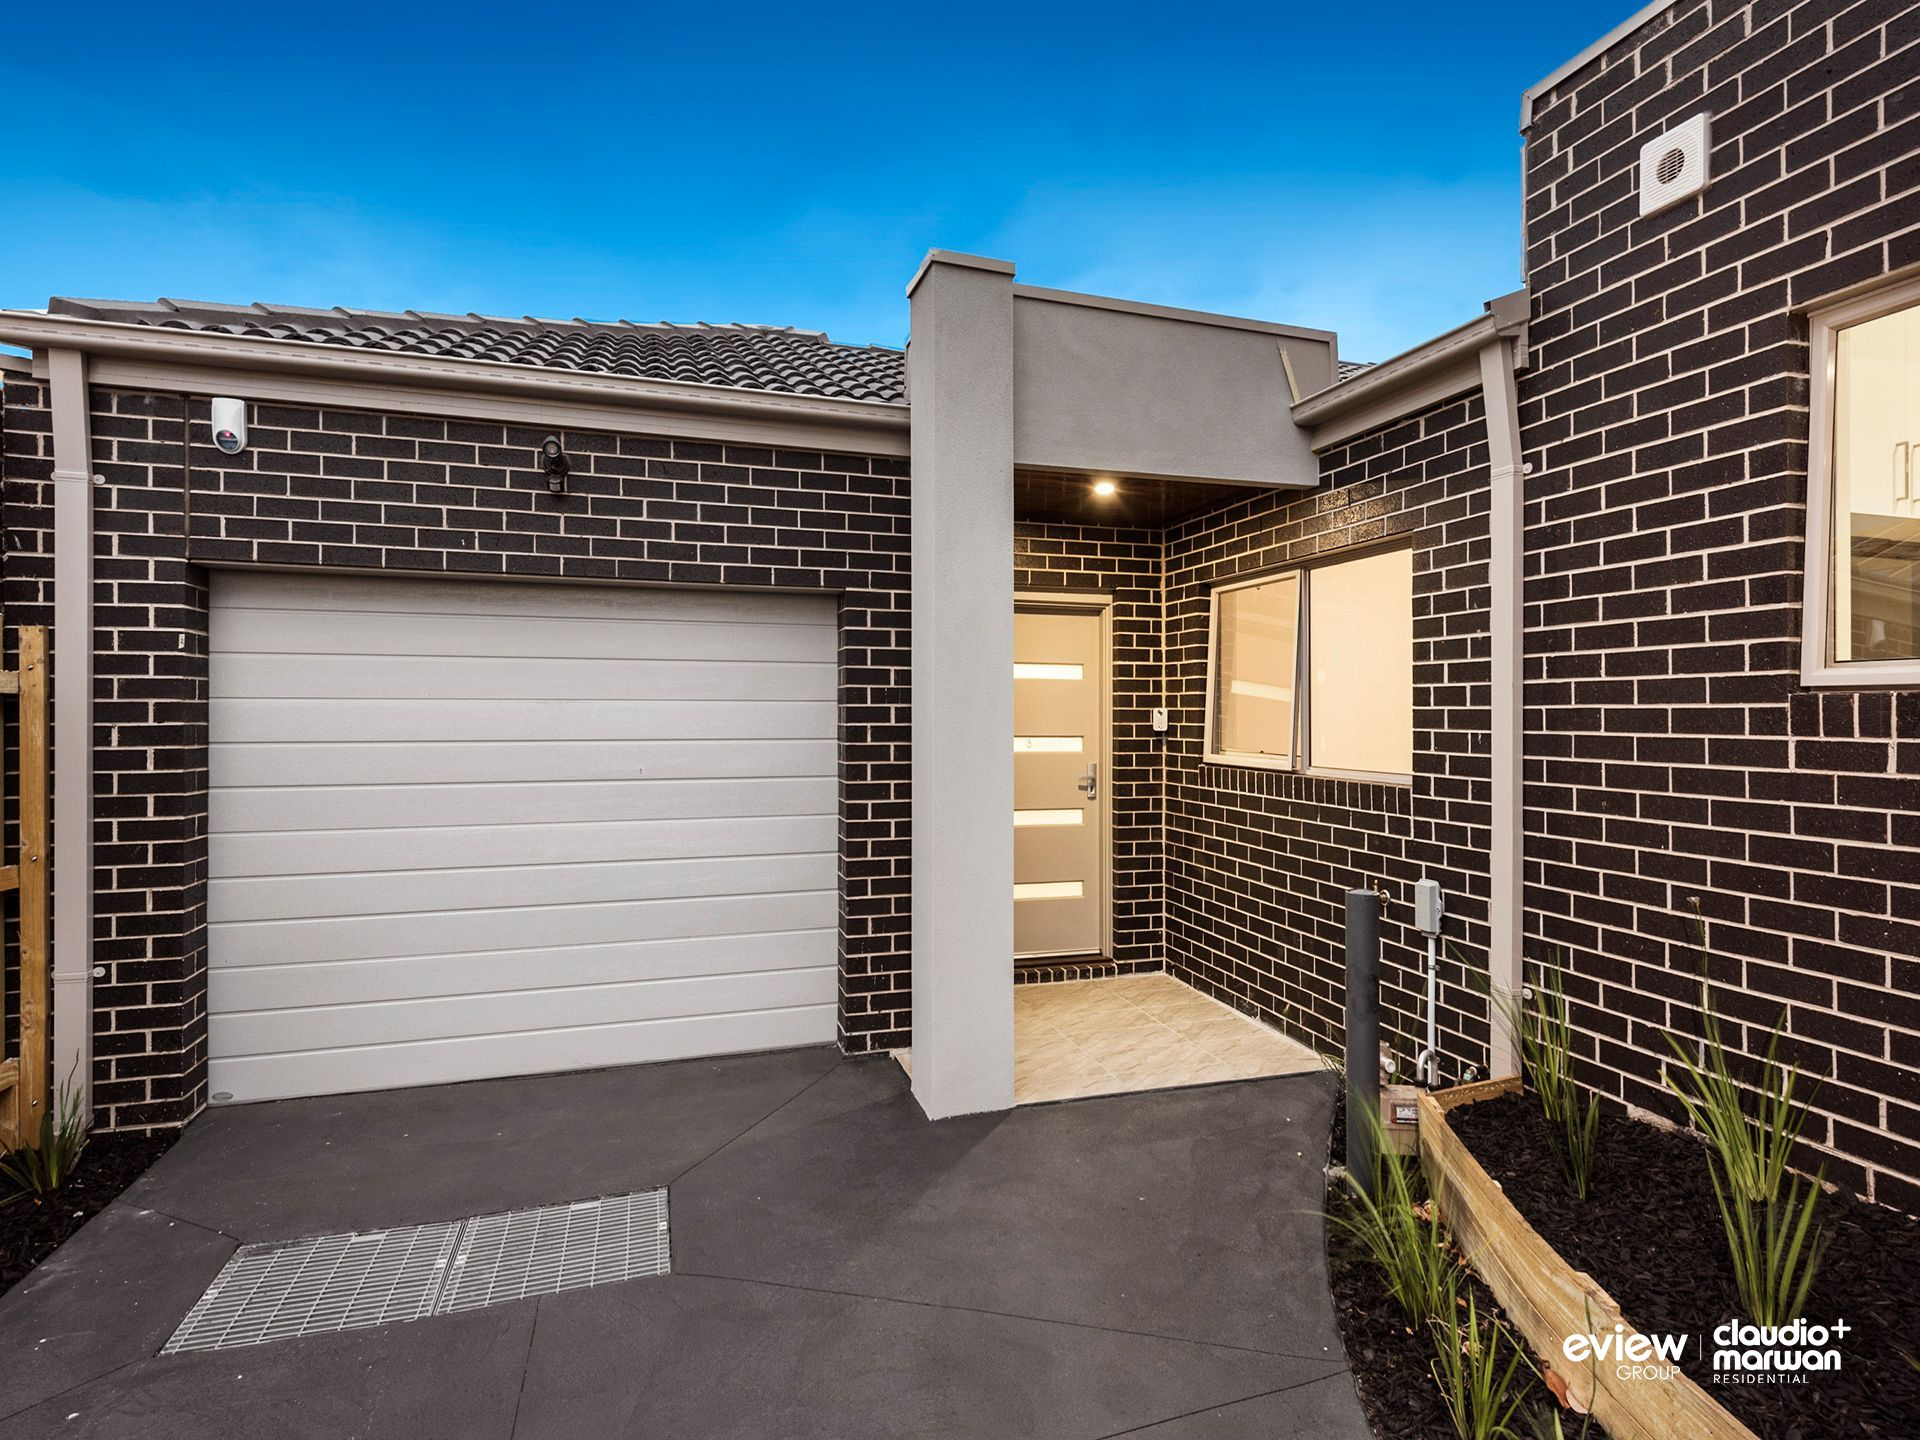 3/121 Evell Street, GLENROY, VIC, 3046 - Image